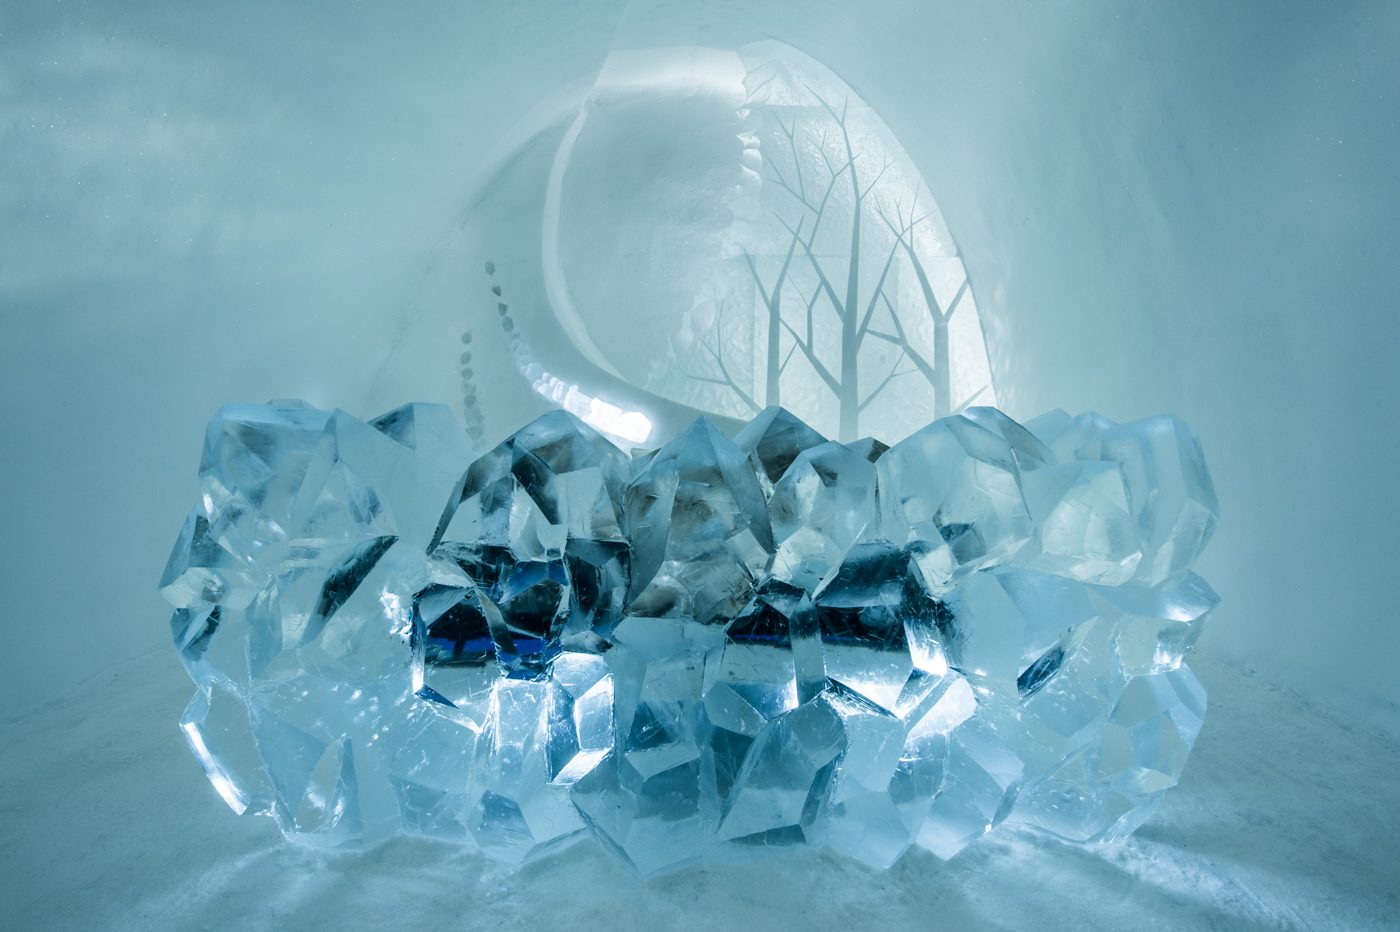 art-suite-radiance-icehotel-28-1400x932